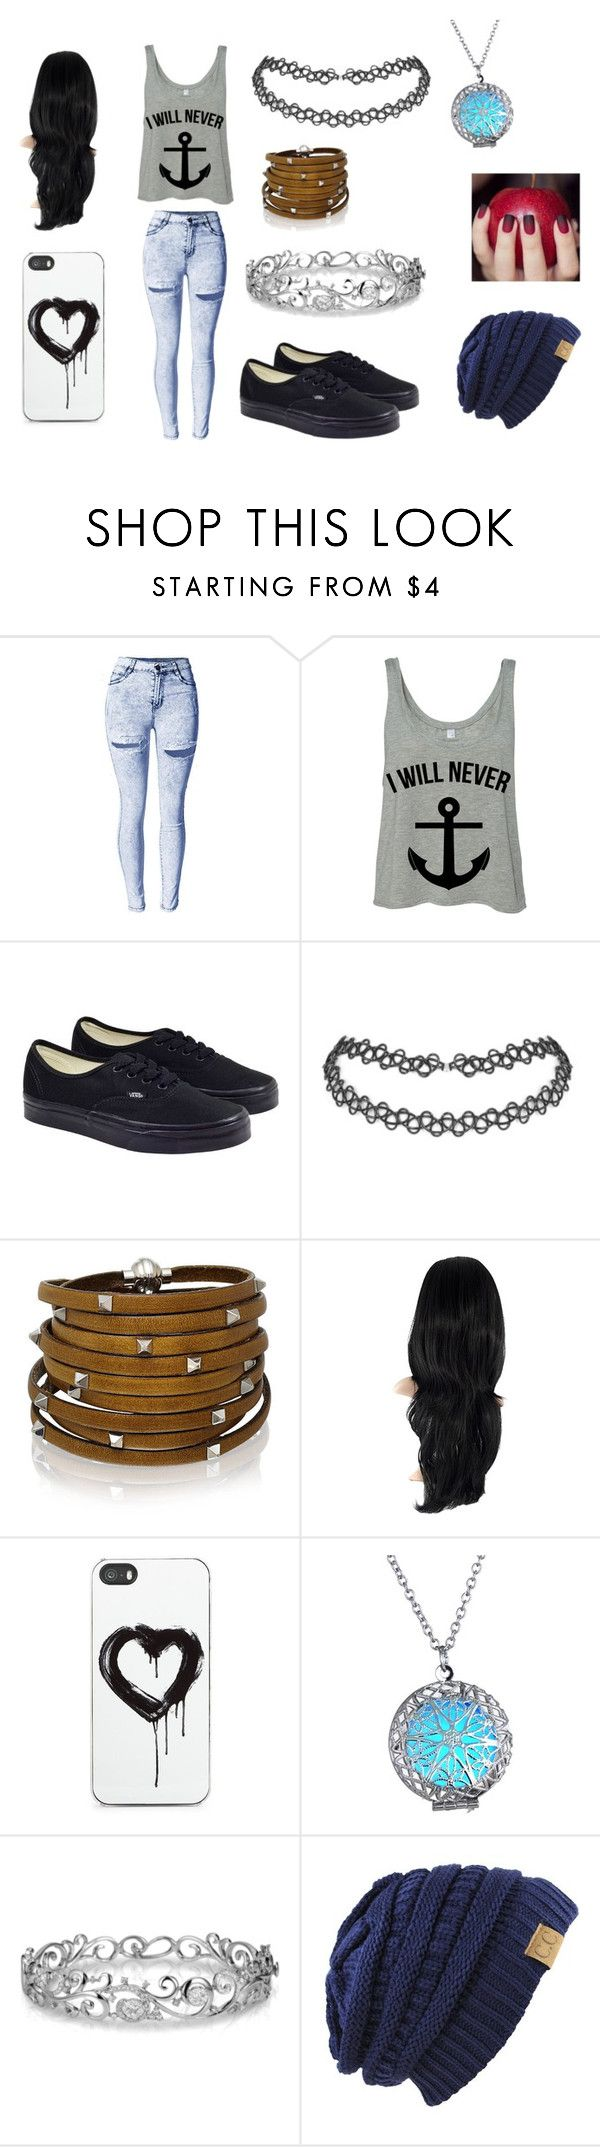 """Thing"" by zahlia-tibbs on Polyvore featuring beauty, Vans, Sif Jakobs Jewellery, Zero Gravity and Effy Jewelry"